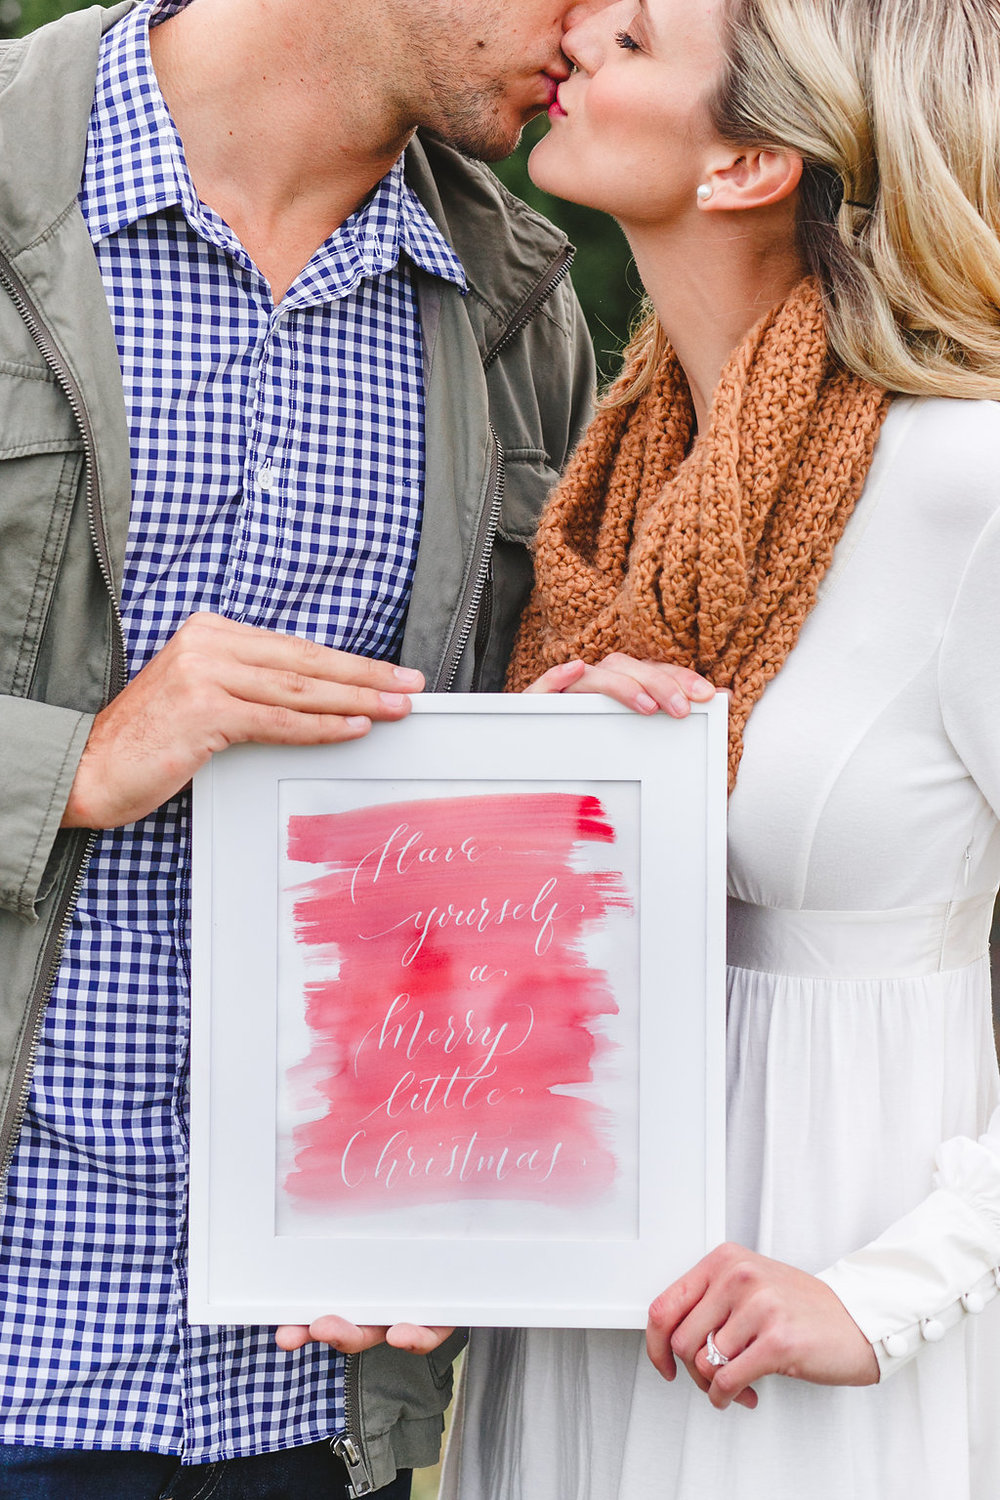 Christmas Proposal | Lindsey Shea Photography | GRO Designs | Victoria Rellas | Sweet Pea Events |Natalie Grace Calligraphy Co.